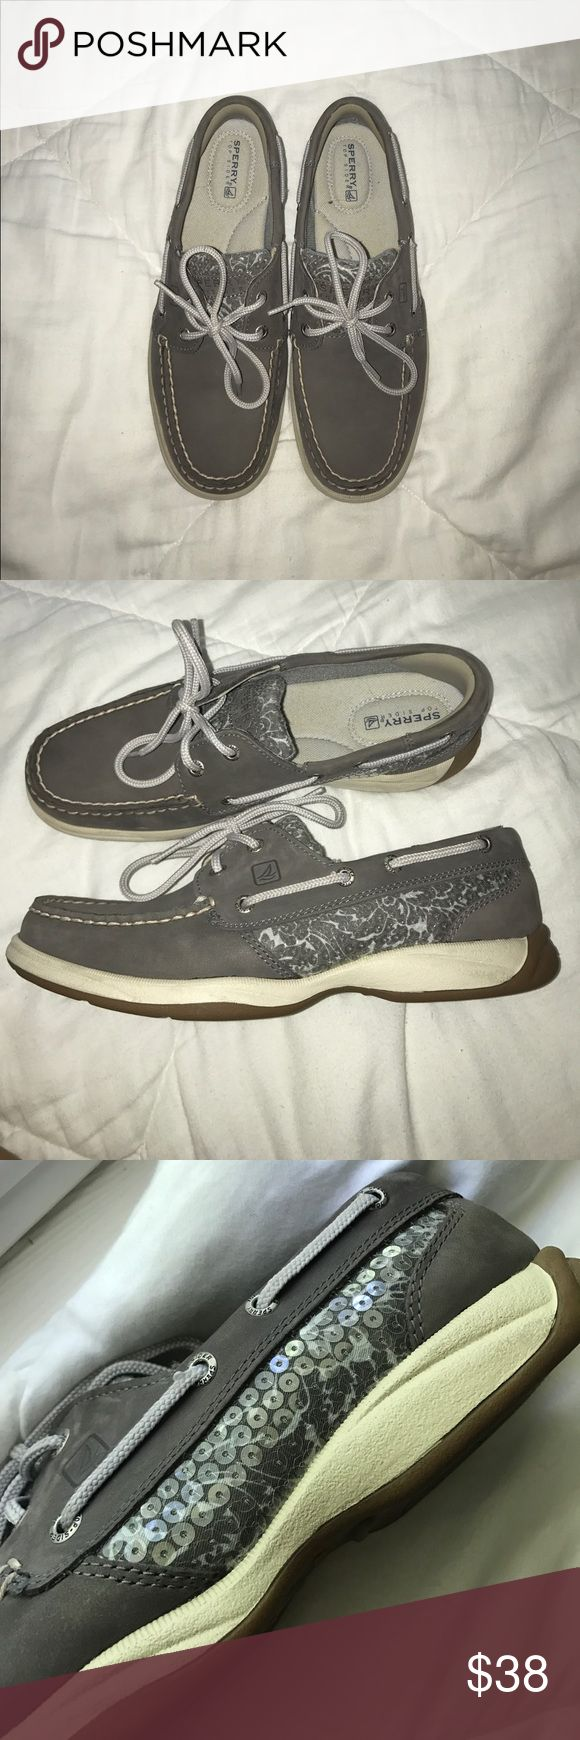 Sperry Top Sider Gray Boat Shoes with Sequins Sperry top sider gray boat shoes with sequin detailing on the side and fabric part on the top!! In great condition!! Only worn once!! Sperry Top-Sider Shoes